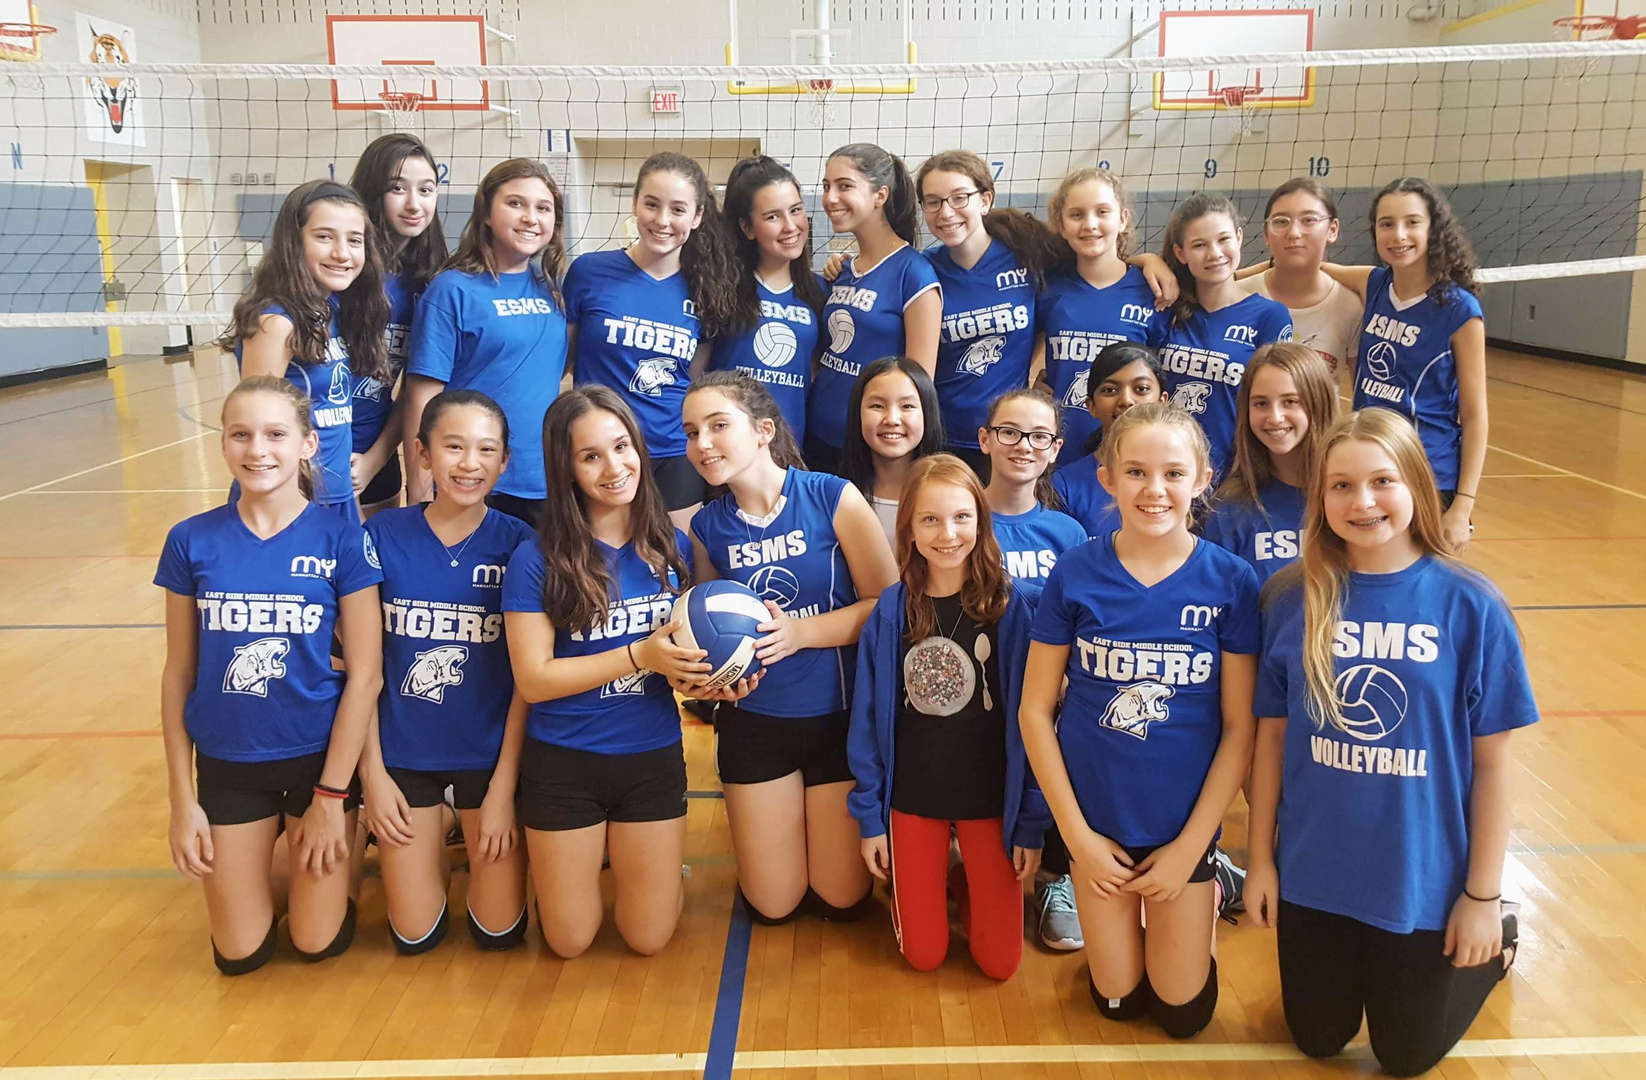 Girls Varsity Volleyball team  - 2018-2019